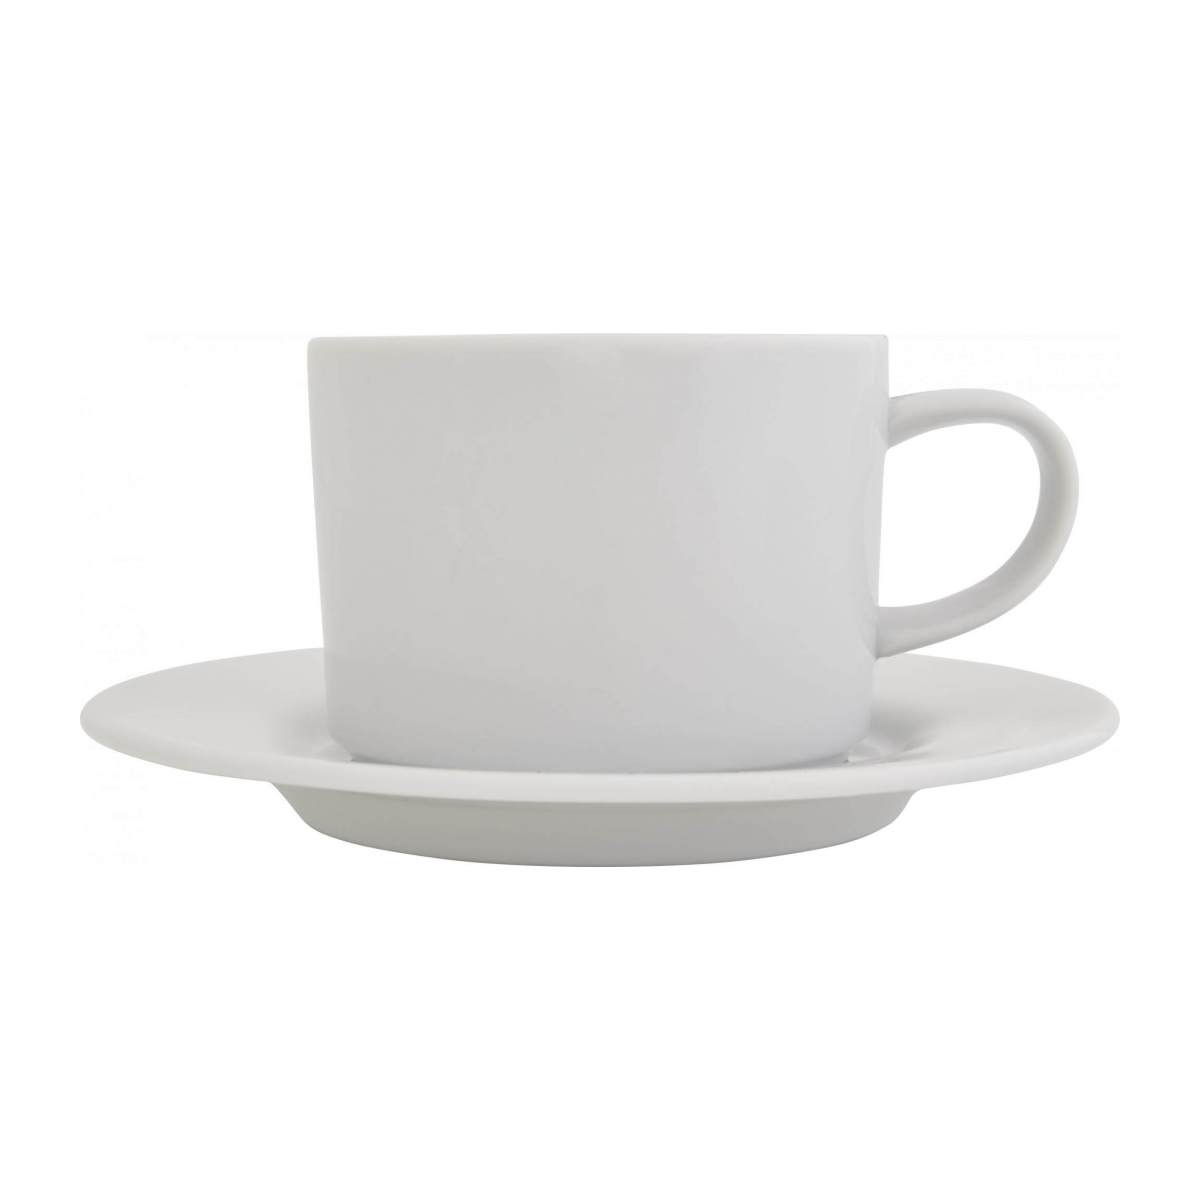 tea cup and saucer n°3